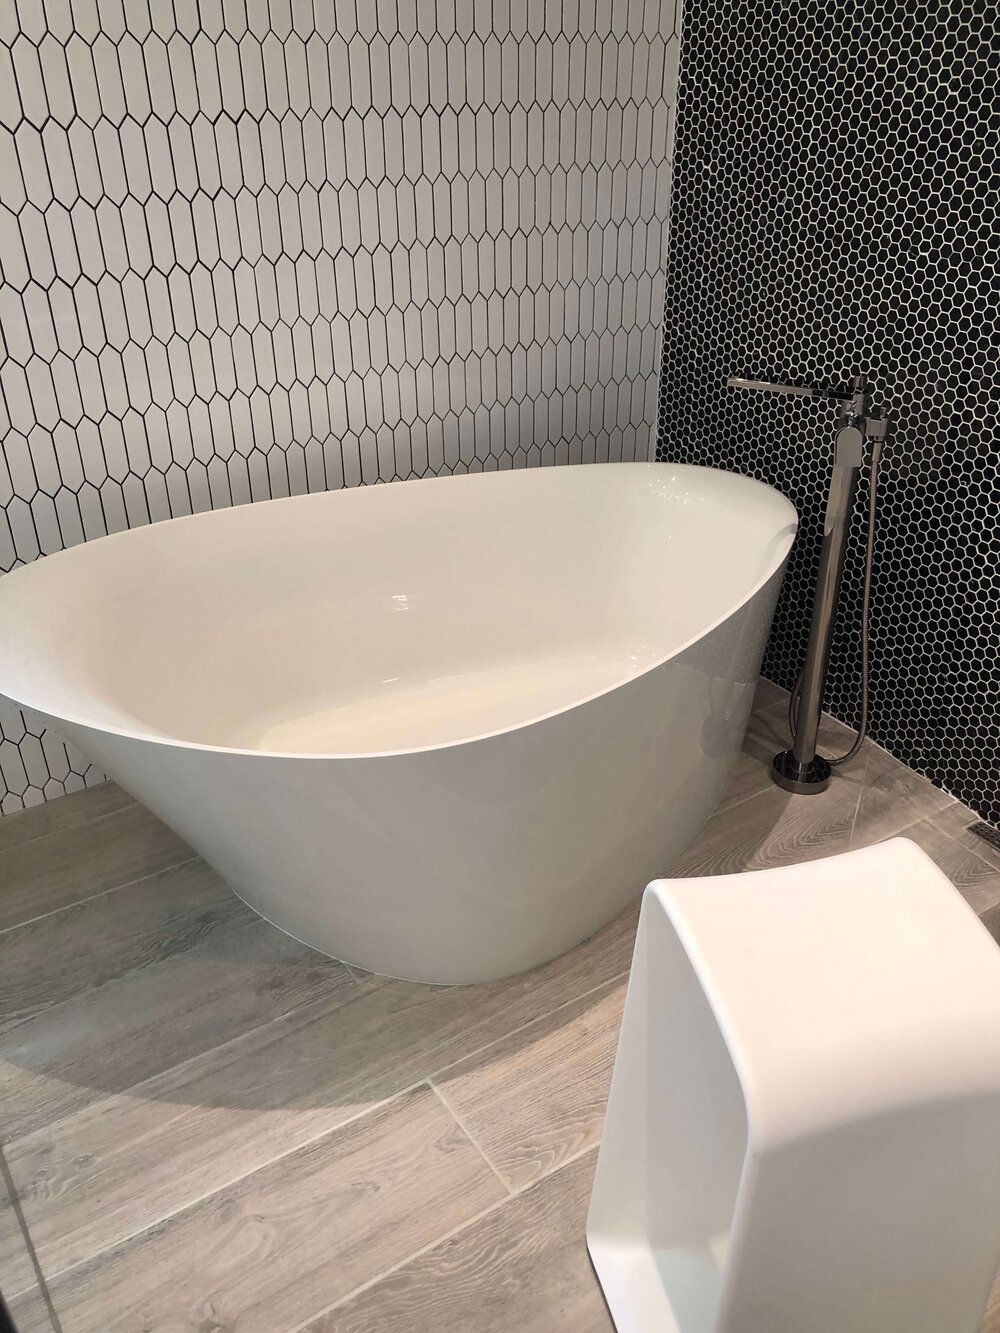 Free standing tub placed in large shower stall in The New American Remodel. TNAR | #remodeling #remodel #masterbathideas